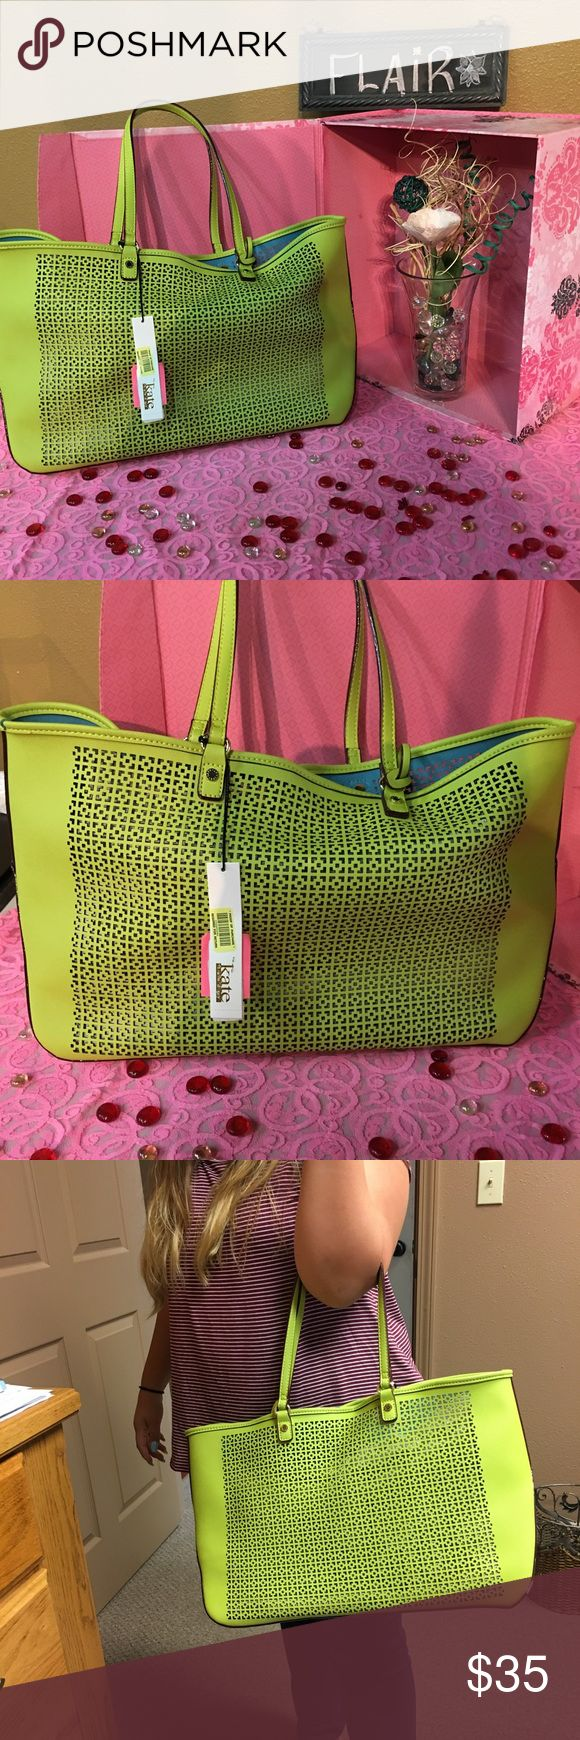 Kate Landry purse Green we've with gold hardware Kate Landry purse large type tote😃NWT! Cute,cute,cute Kate Landry Bags Shoulder Bags